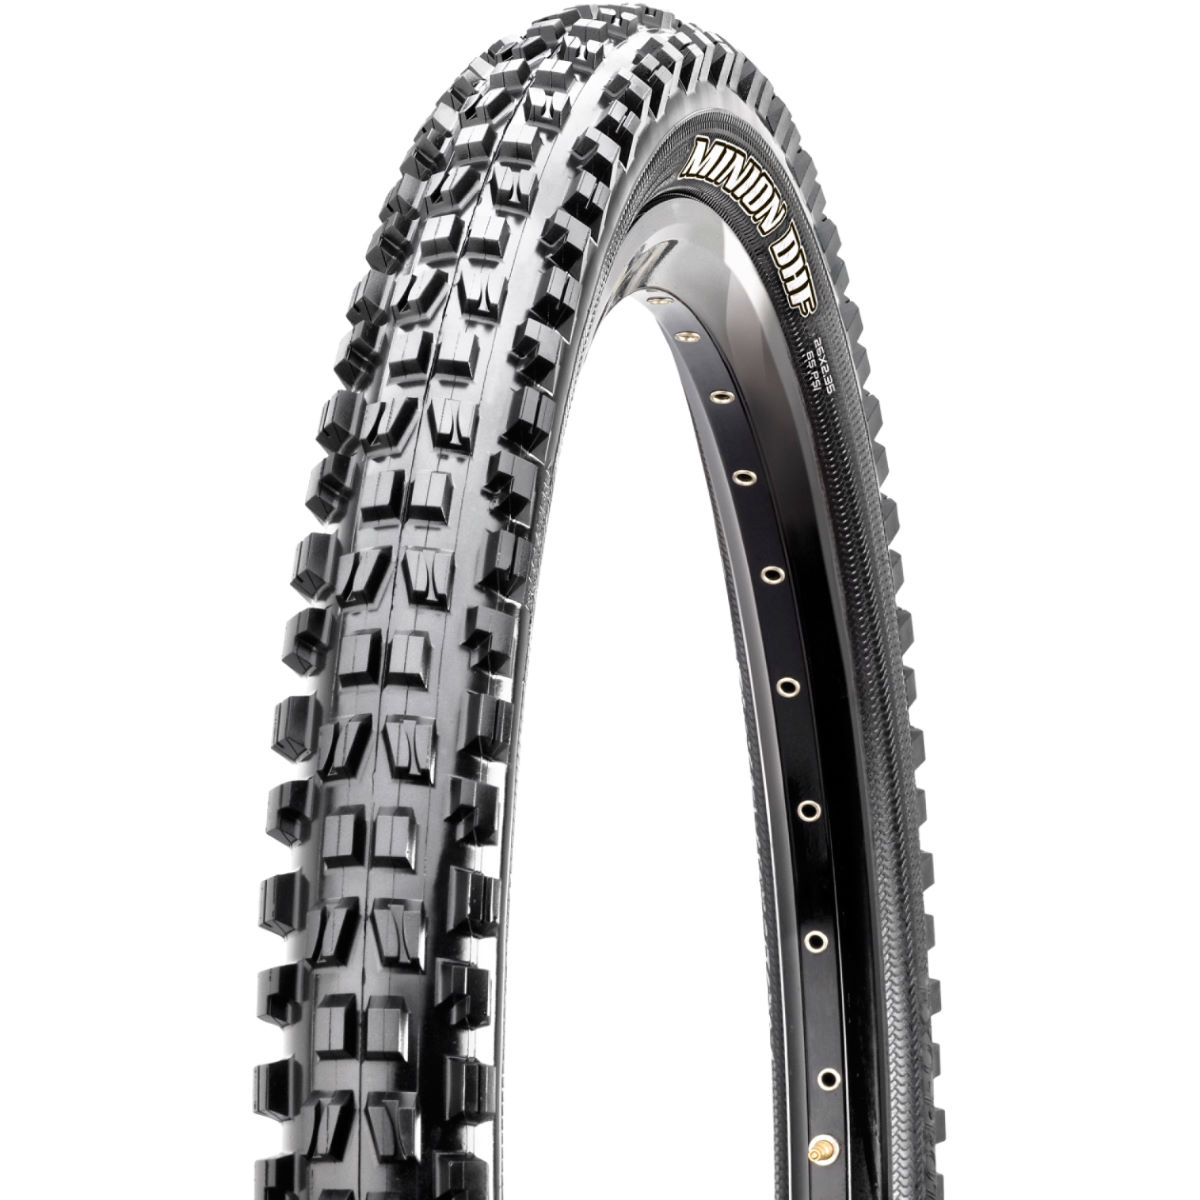 Maxxis Maxxis Minion DHF Wired MTB Tyre   Tyres